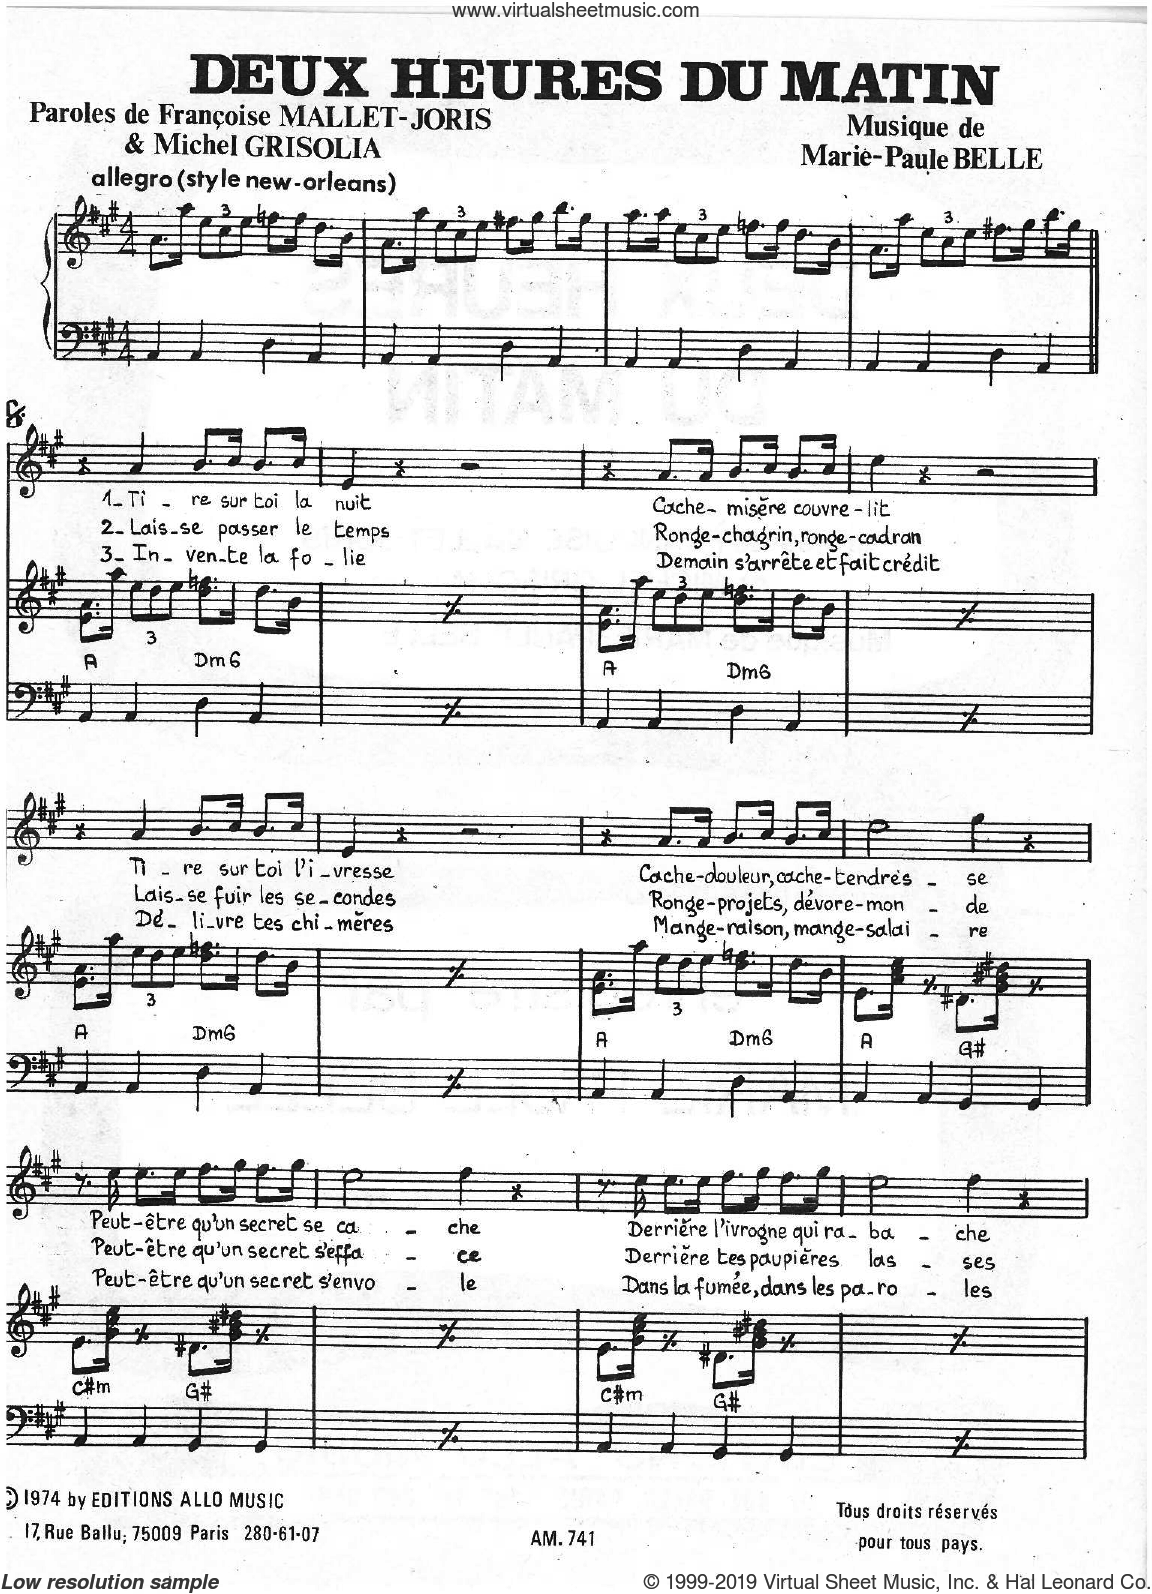 Deux Heures Du Matin sheet music for voice and piano by Marie Paule Belle, Francoise Mallet-Joris, Michel Grisolia and Michel Grisolia, Francoise Mallet-Joris and Marie Paule Belle, classical score, intermediate skill level